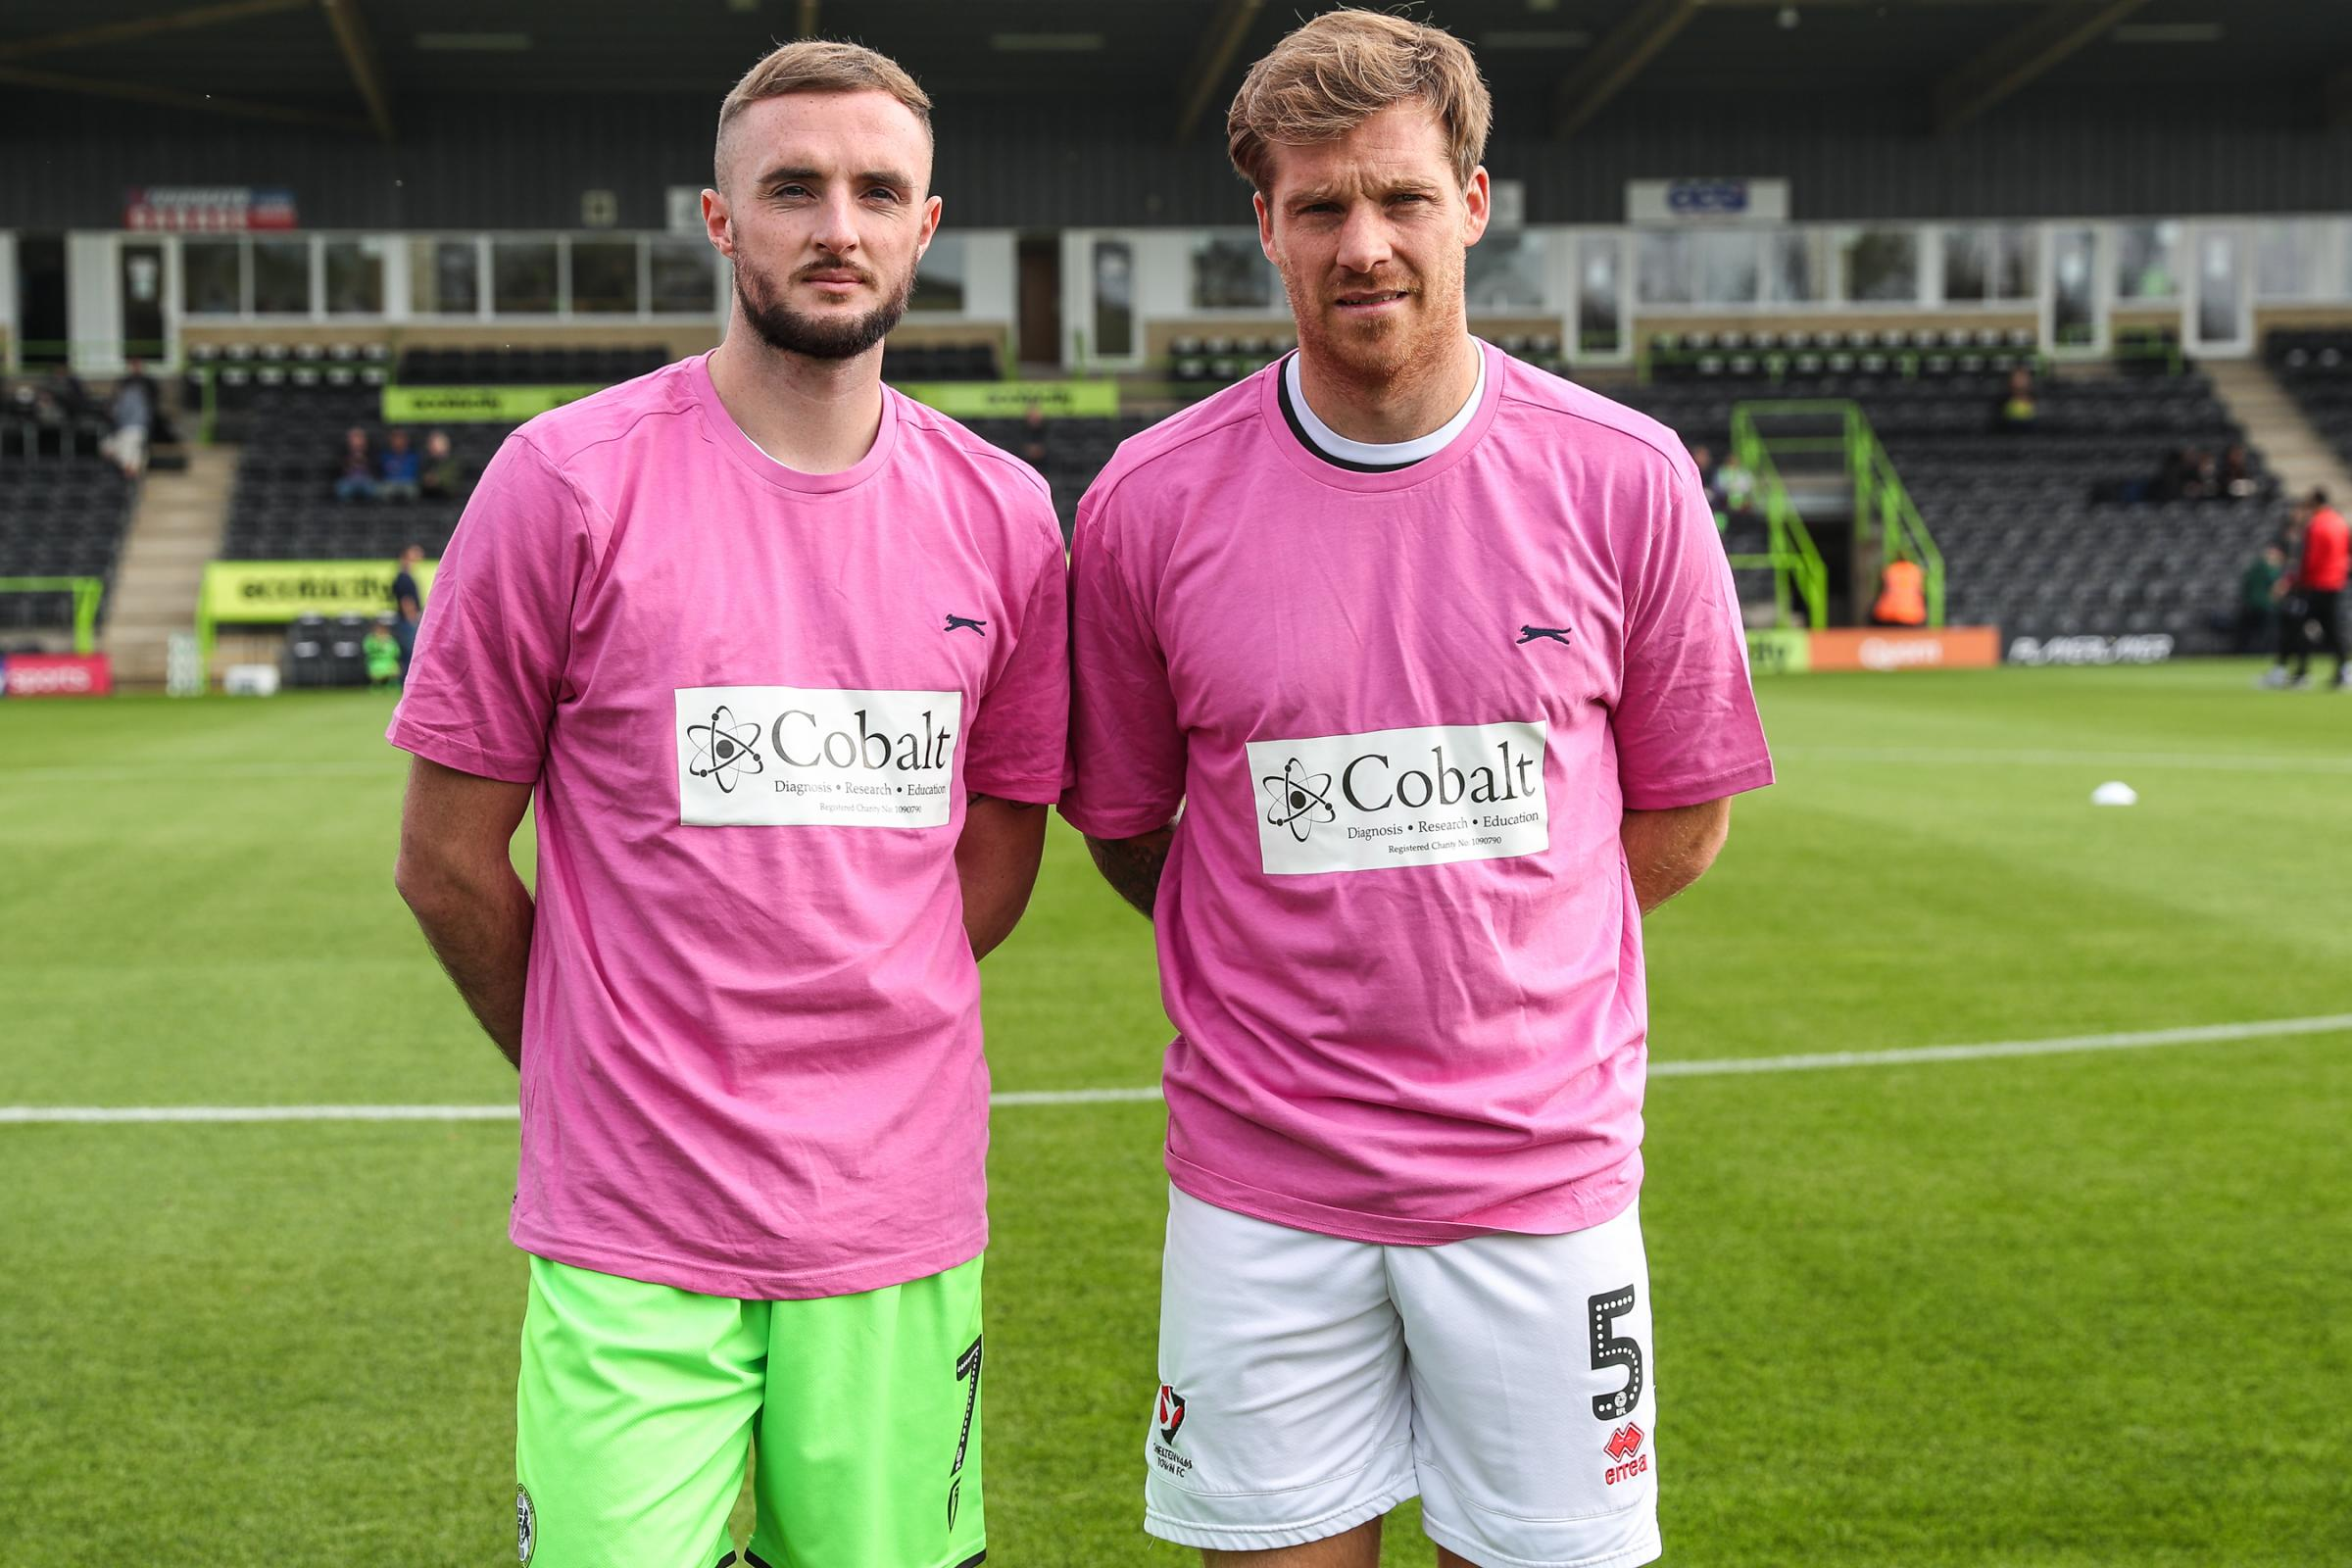 Forest Green Rovers Carl Winchester(7) and Cheltenham Town's Jonny Mullins sport the pink t-shirts supporting charity Colbalt during the EFL Sky Bet League 2 match between Forest Green Rovers and Cheltenham Town at the New Lawn, Forest Green, United